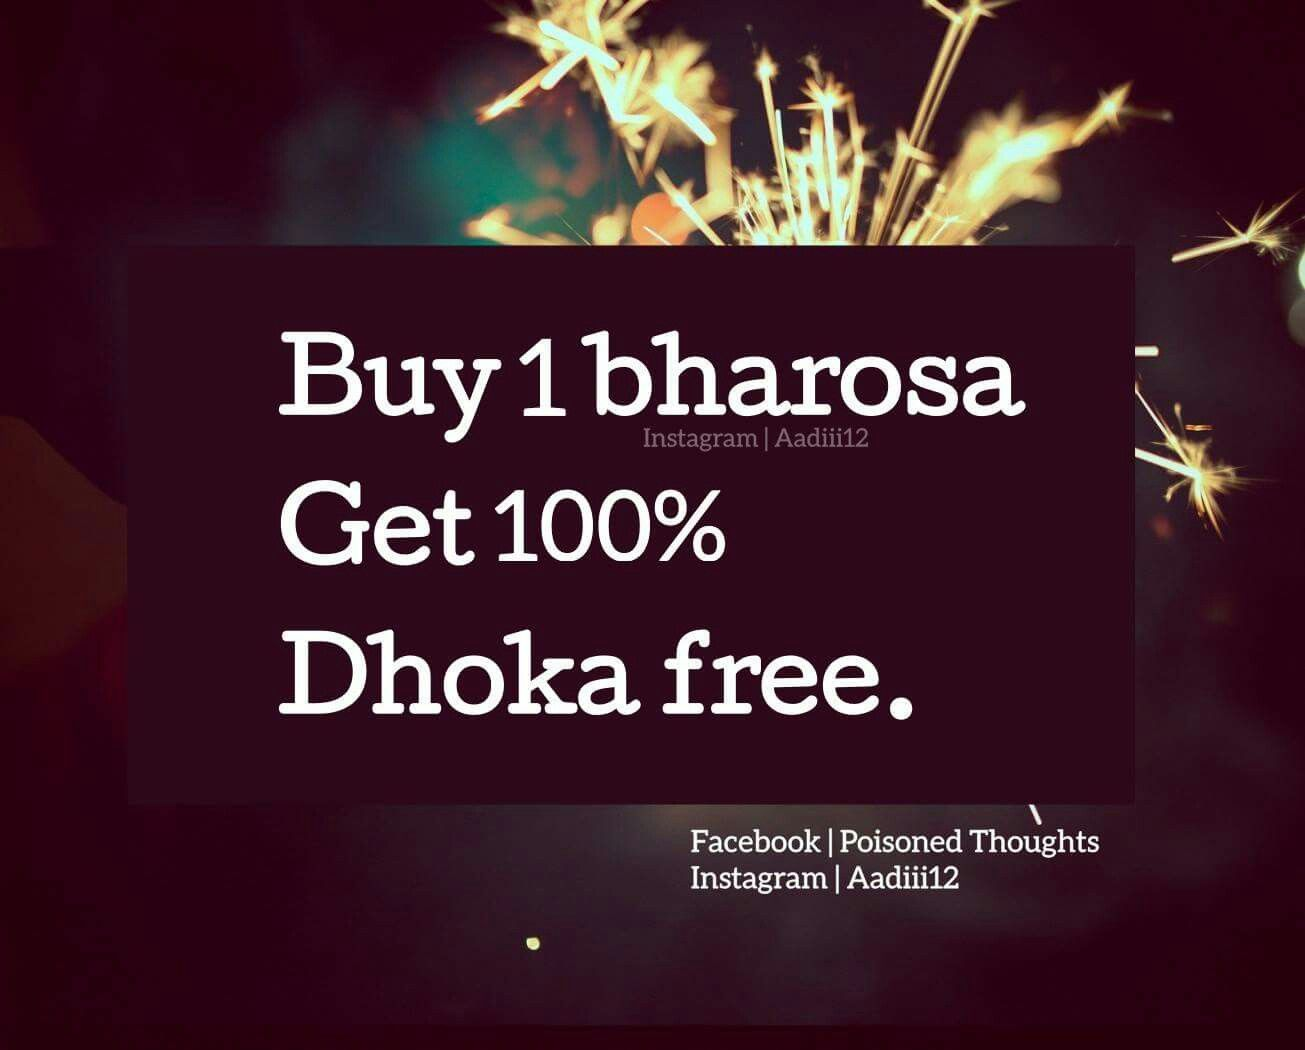 Dhamaka Offer Poisoned Thoughts Hindi Quotes Quotes Sad Quotes